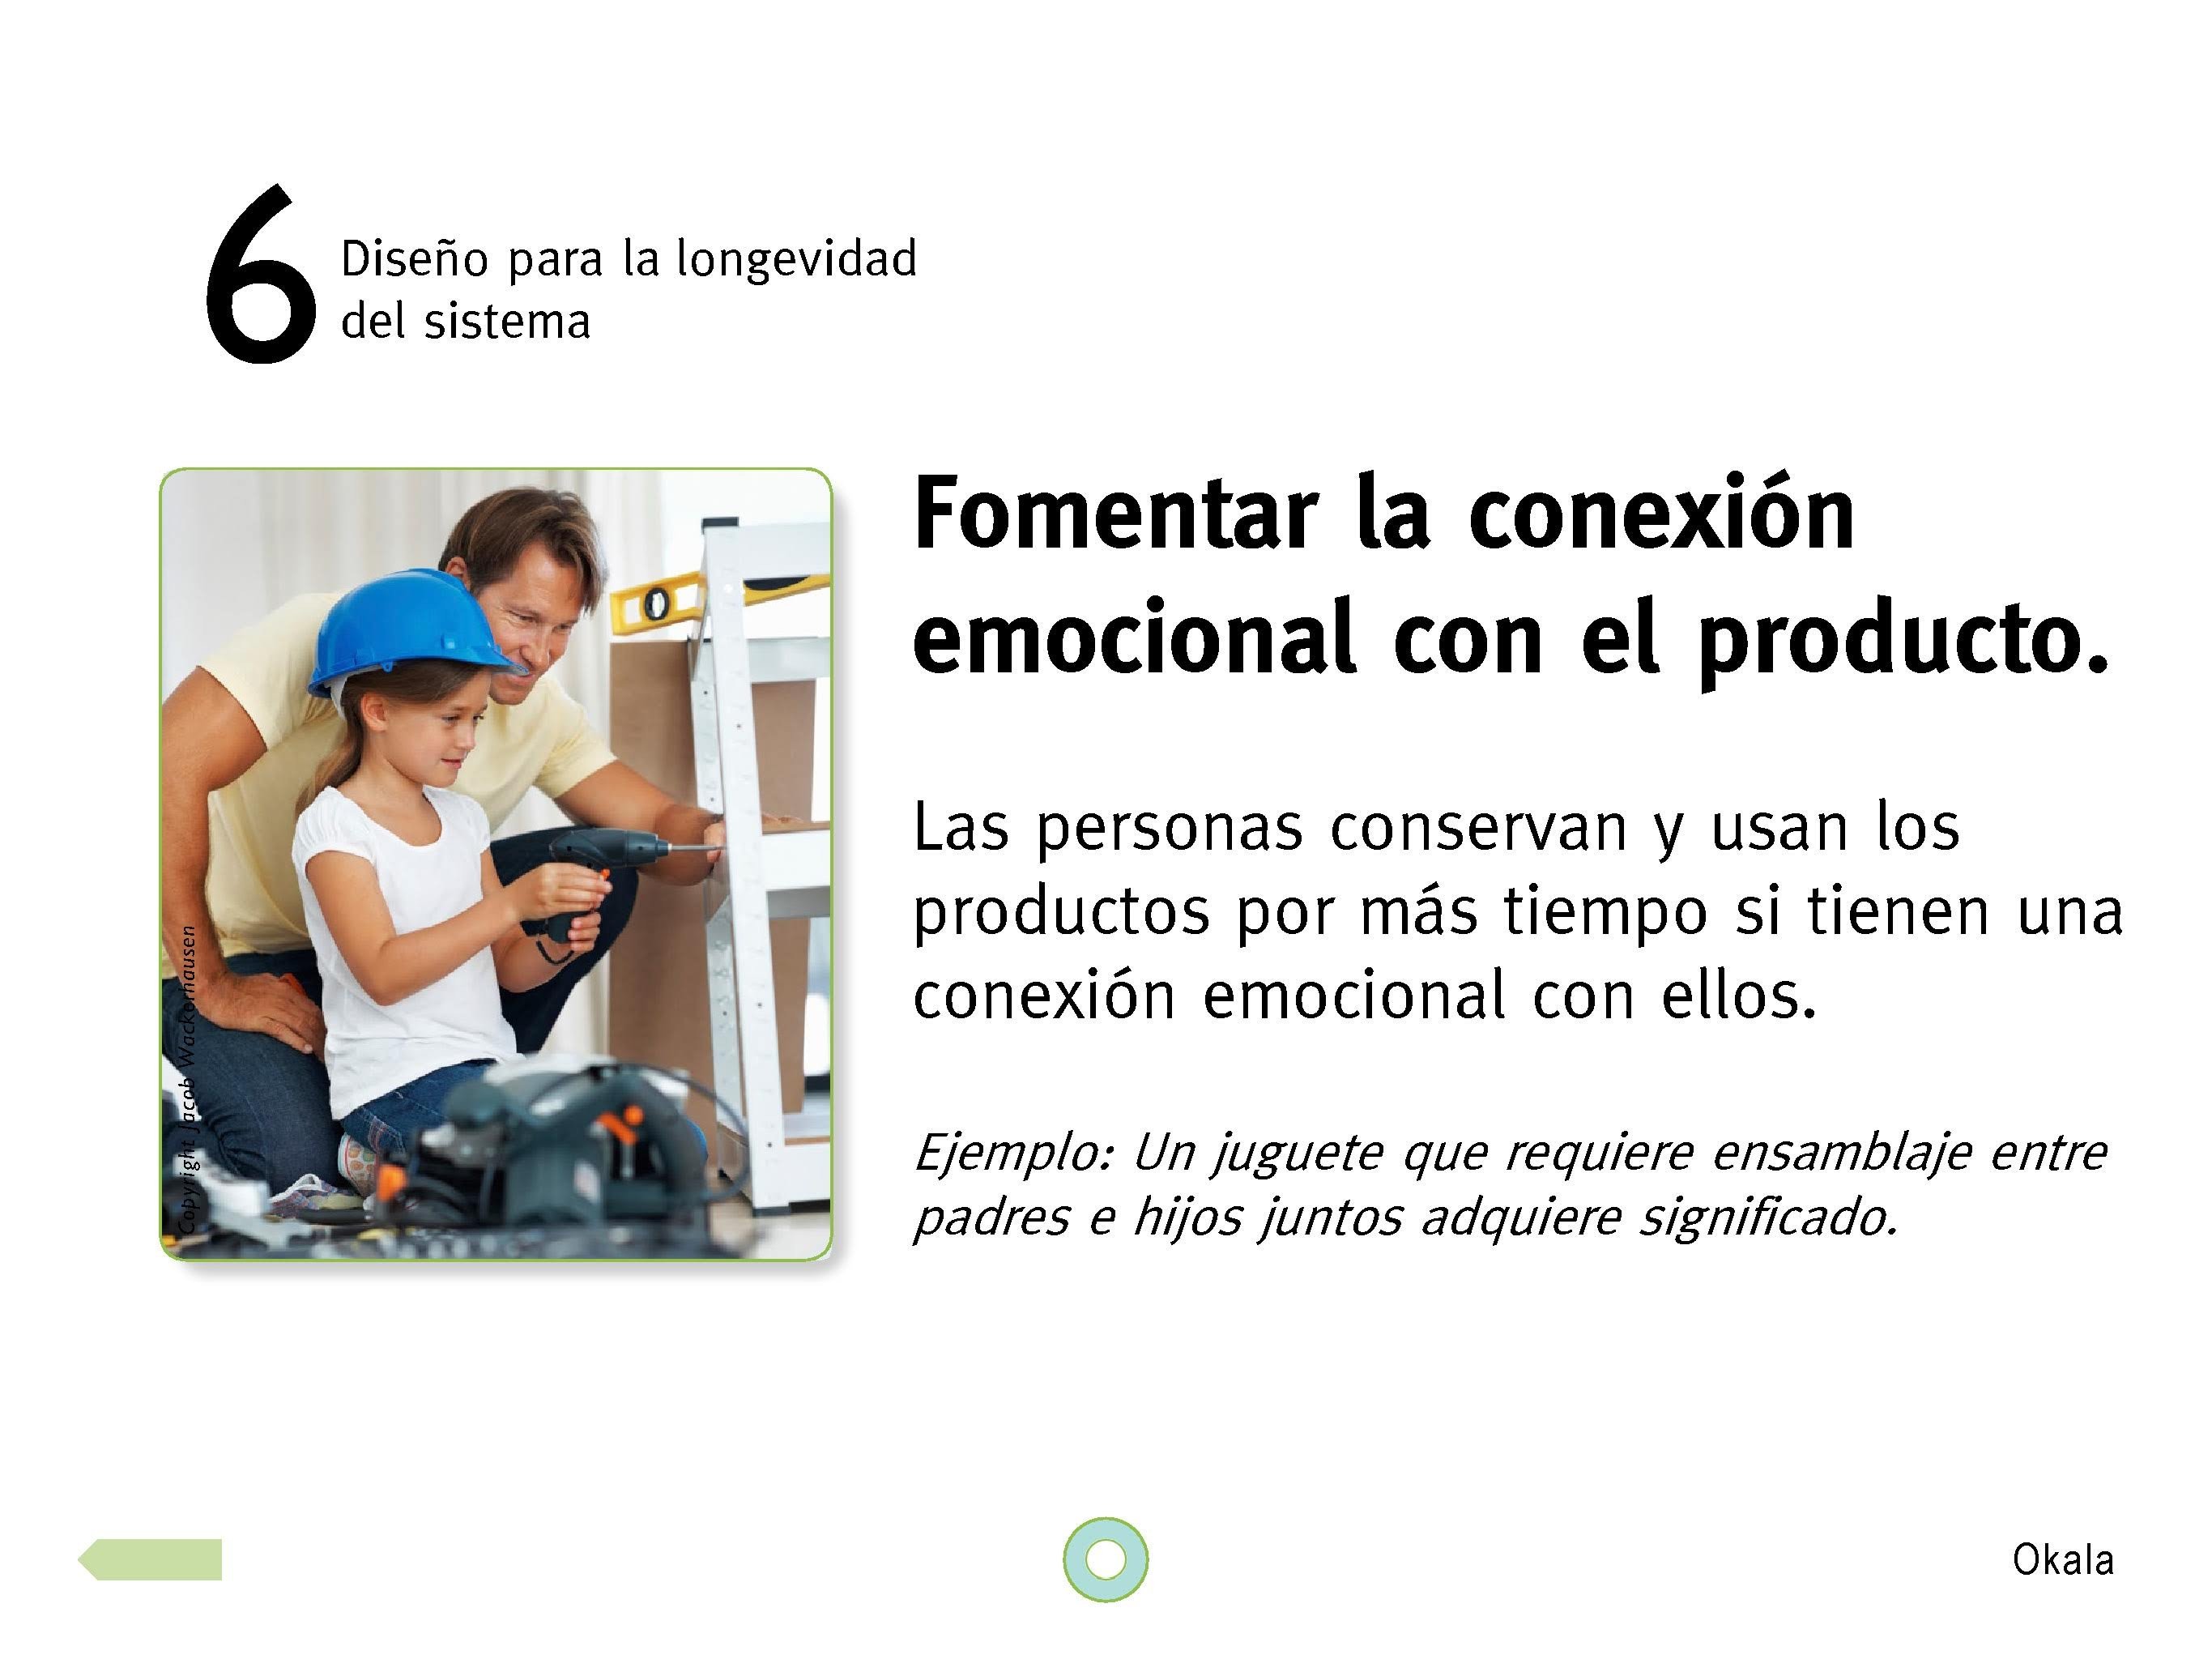 okala-ecodesign-strategy-guide-2012-spanish.new_page_37-1